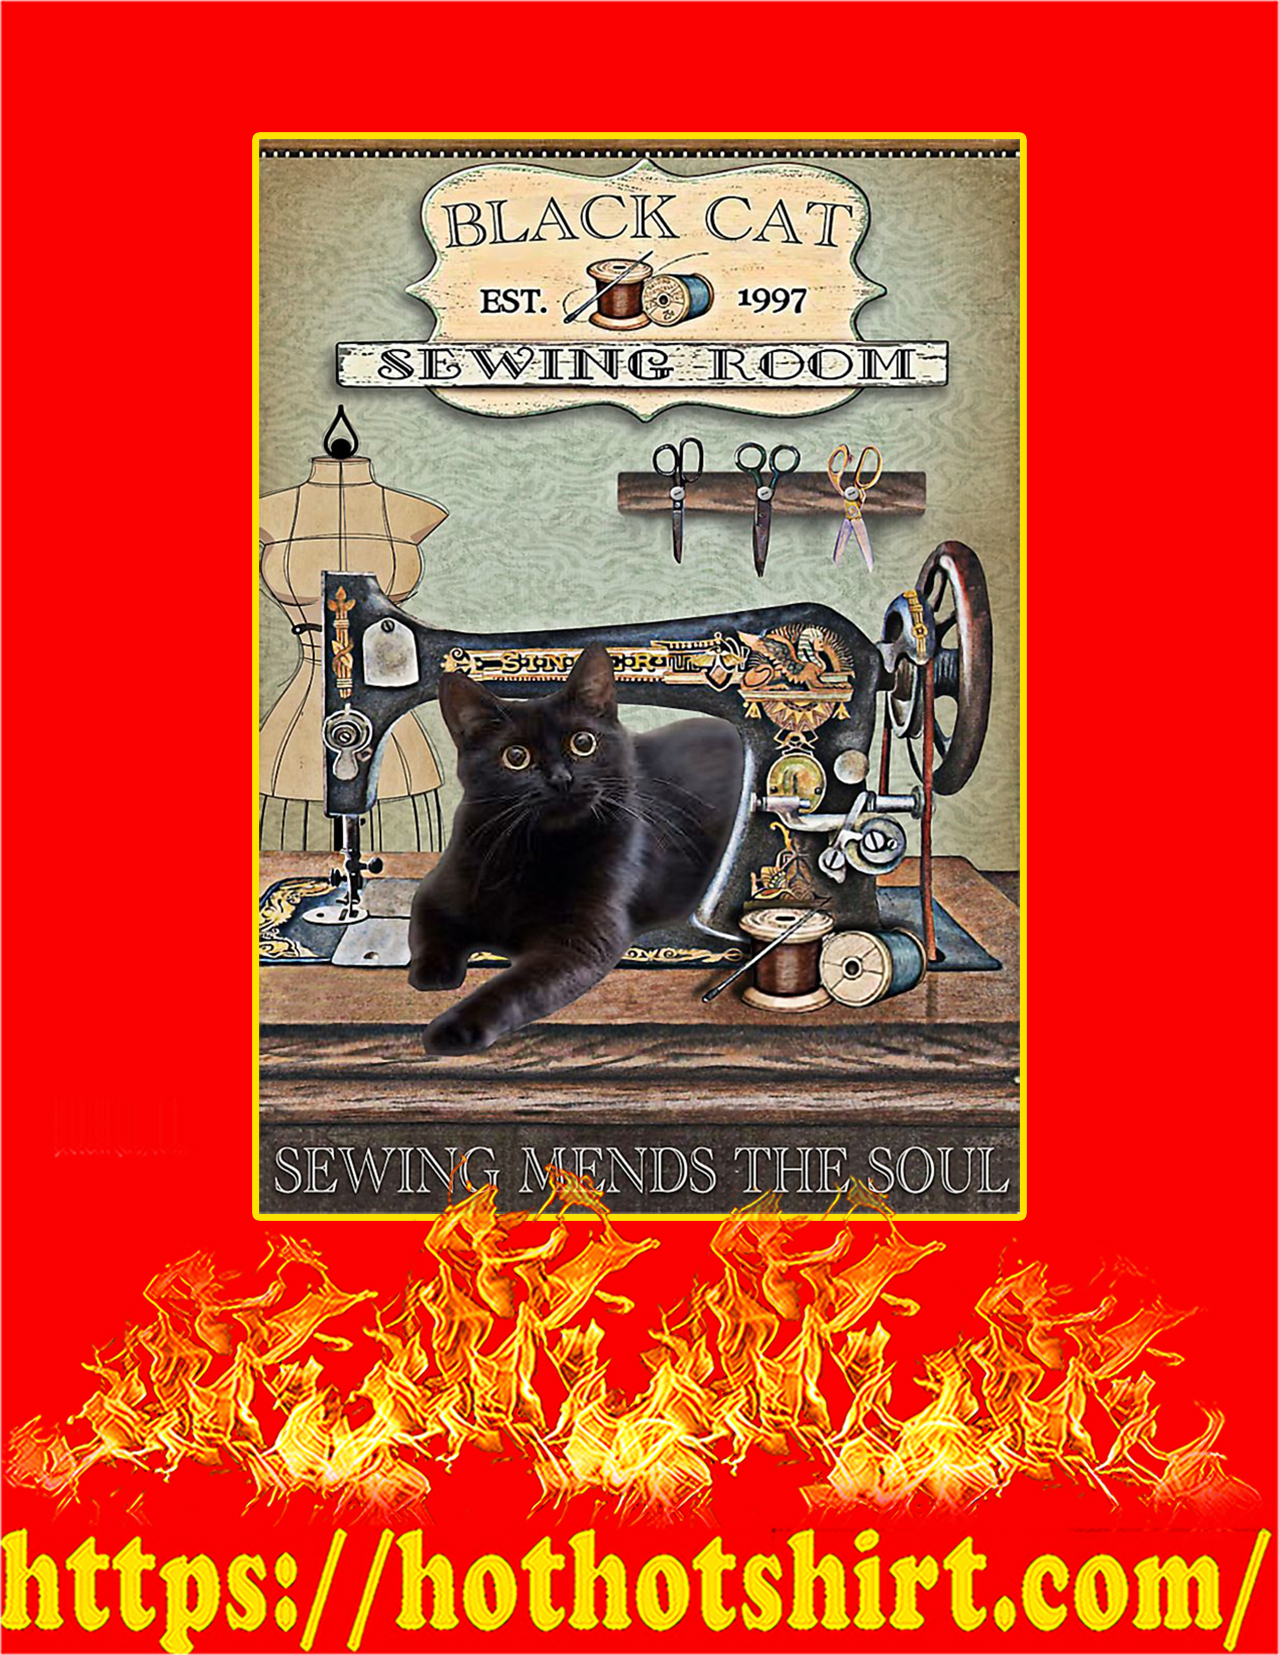 Black Cat Sewing Room Sewing Mends The Soul Poster - A4